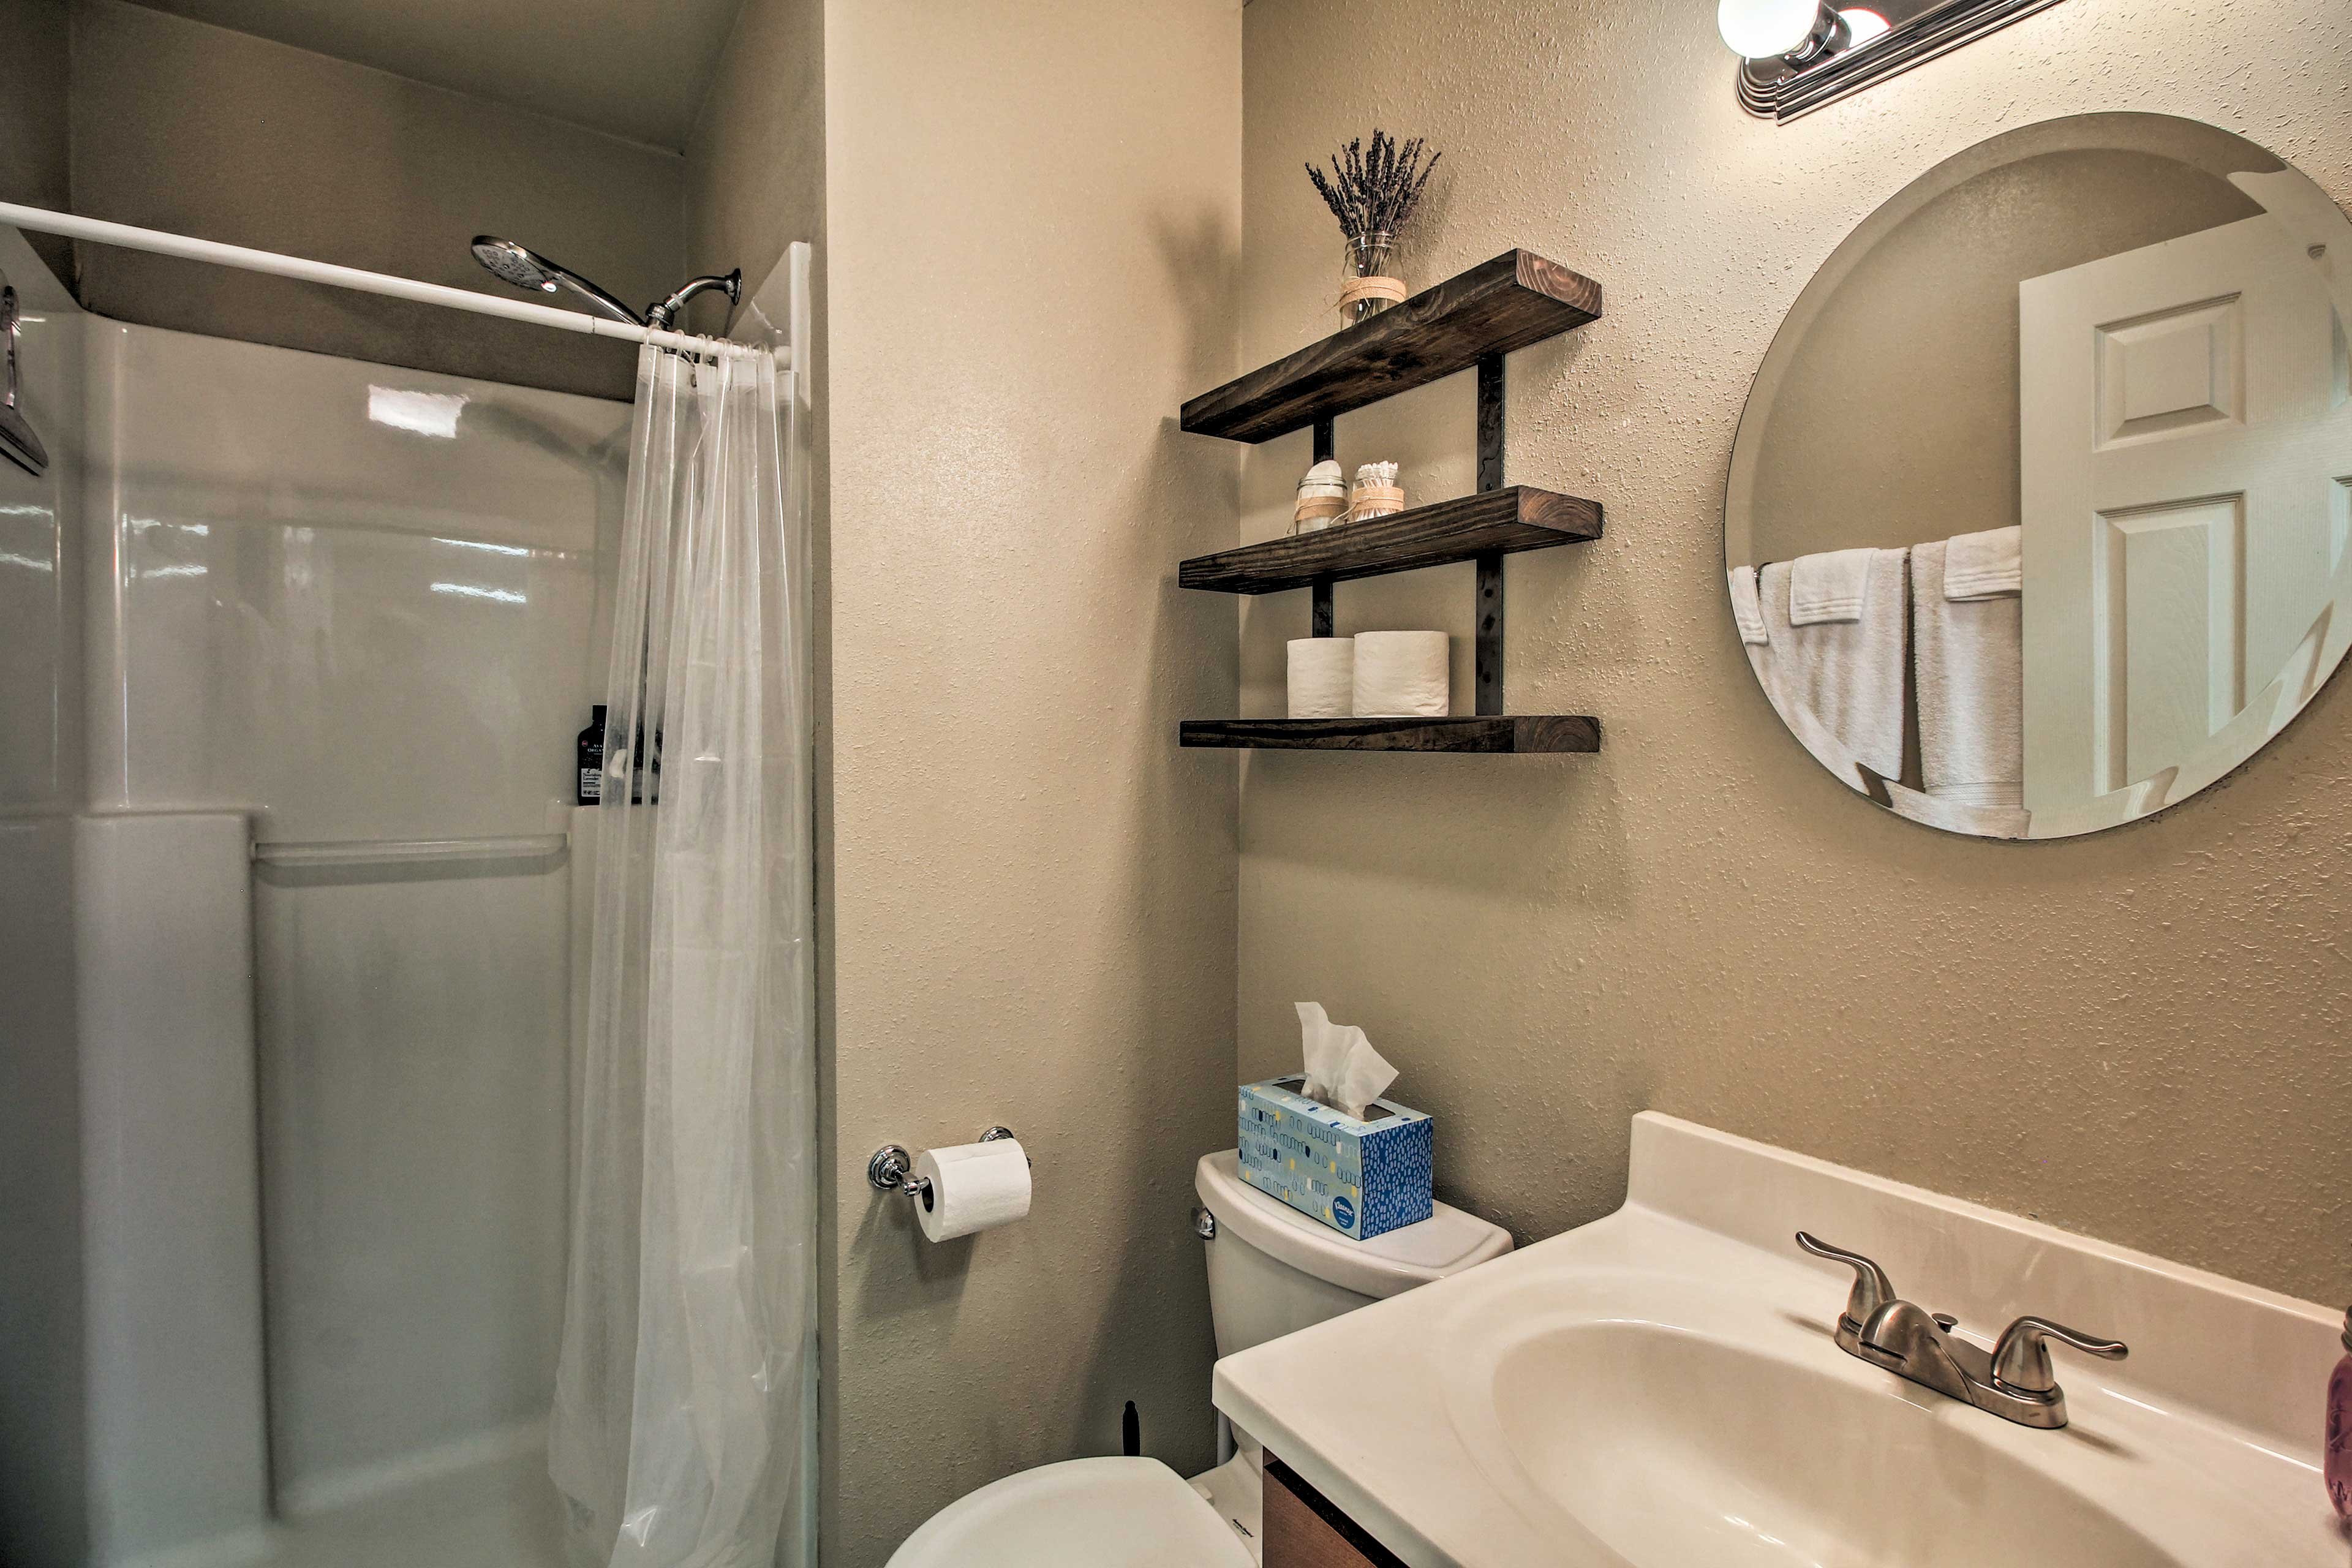 The full bathroom includes a walk-in shower.